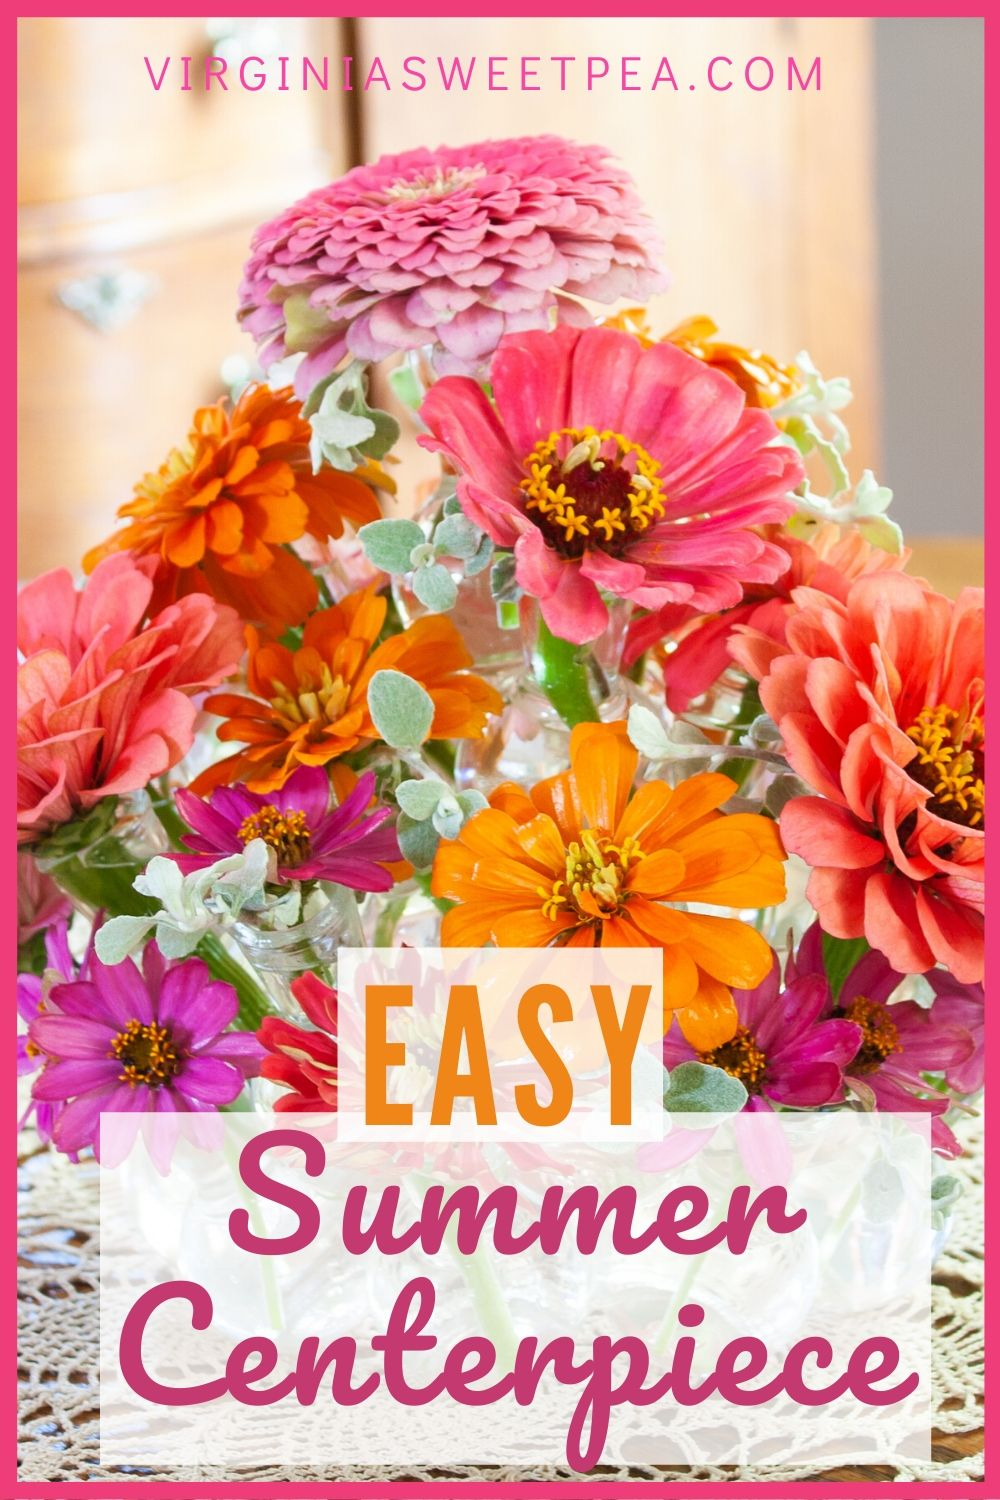 Easy Summer Centerpiece - Making a summer centerpiece for your table is simple with this easy way to arrange flowers. No floral design skills are needed to make this centerpiece. The same method can be used to make a centerpiece in any season. #centerpiece #summercenterpiece #zinnias #flowerarragement via @spaula